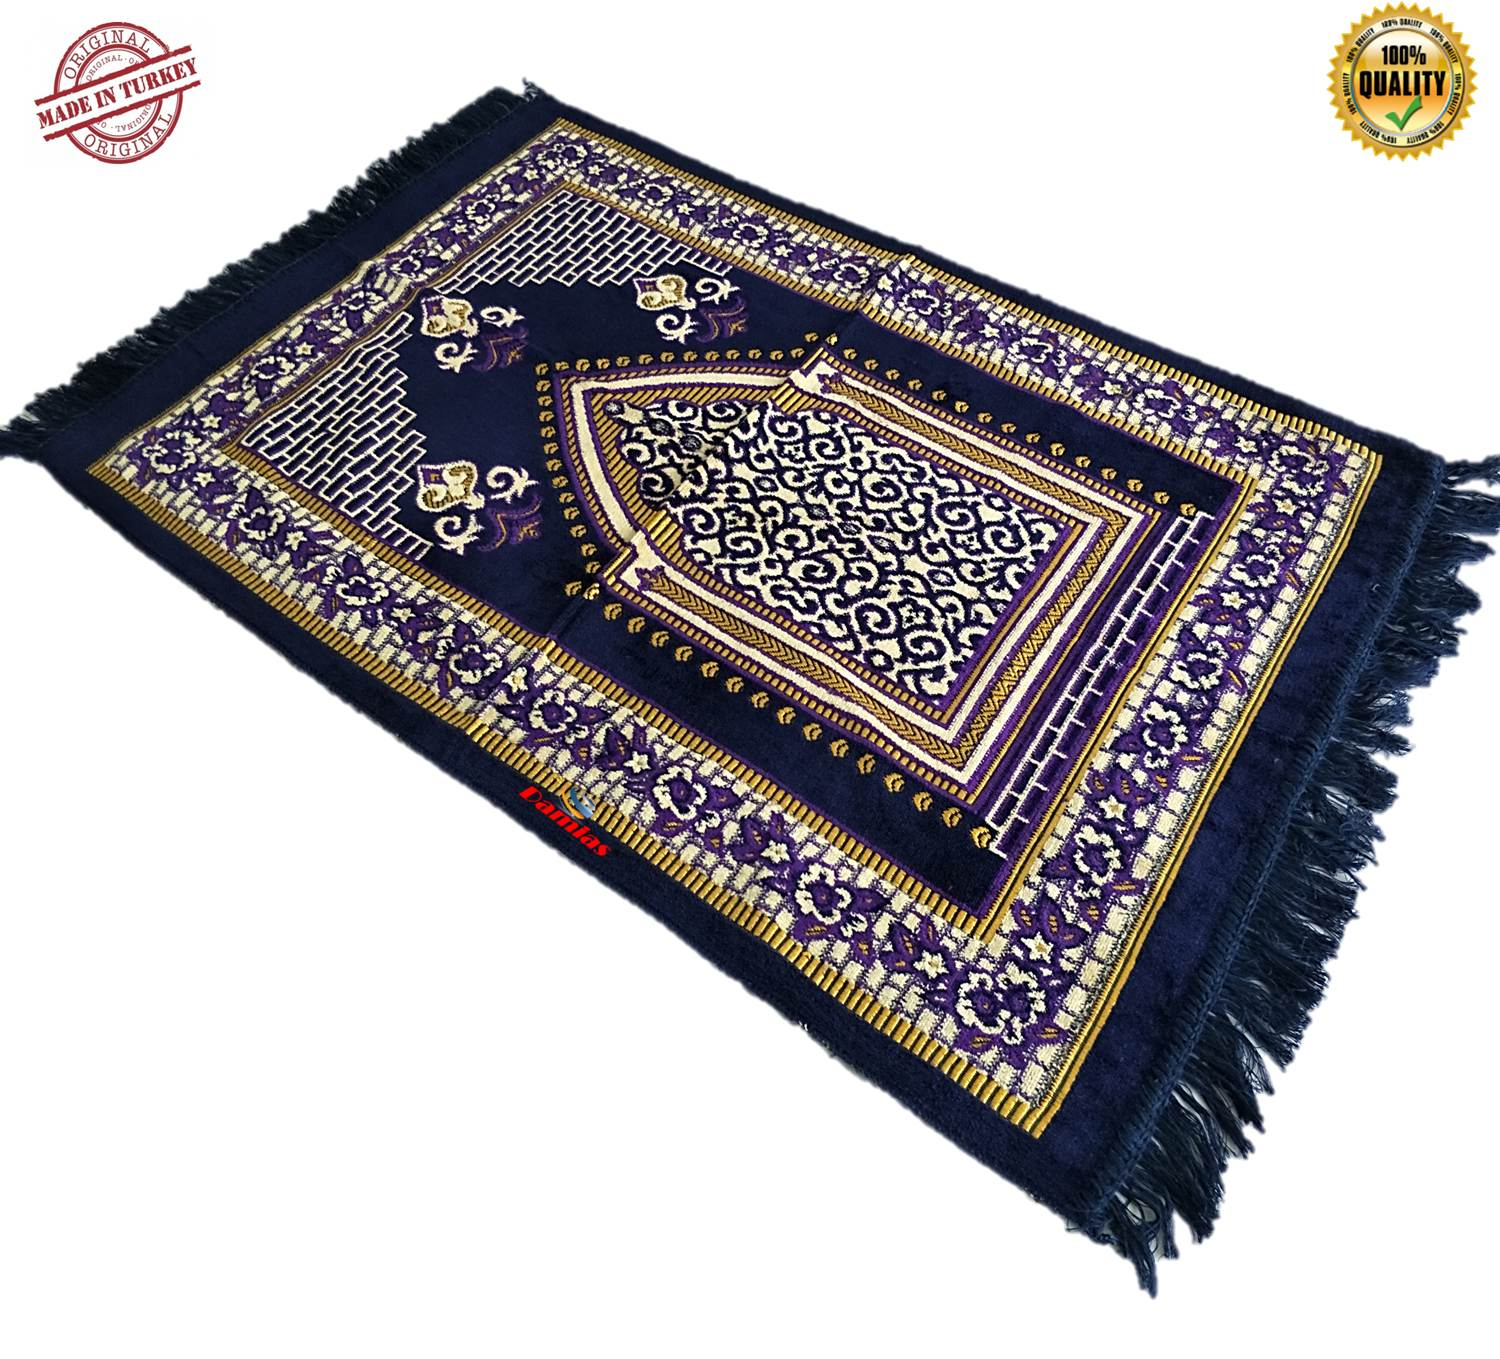 Sejadah Turki Turkey Prayer Mat sulam 120 cm x 72 cm x 5mm